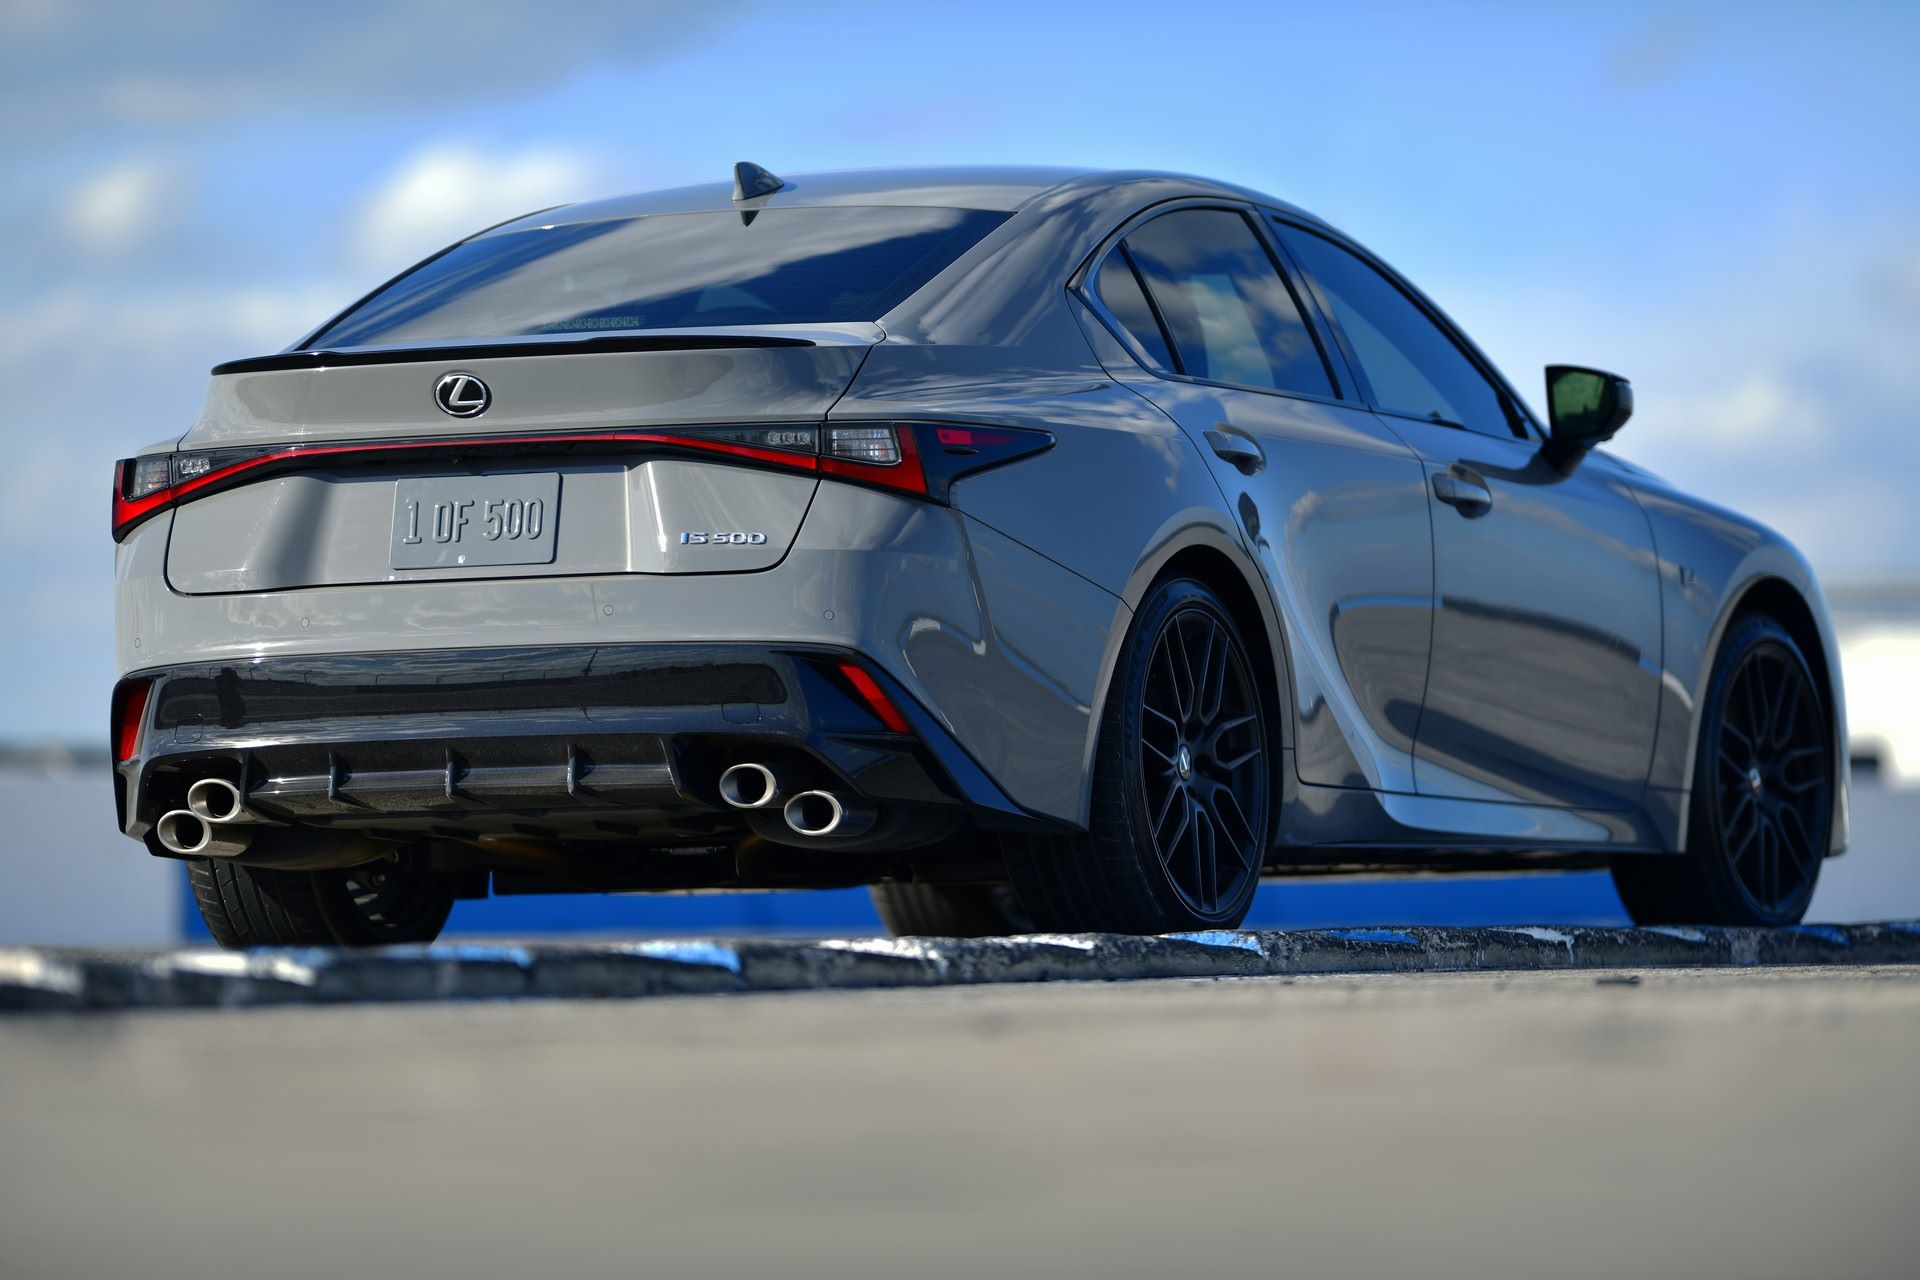 Lexus-IS-500-F-Sport-Performance-Launch-Edition-30